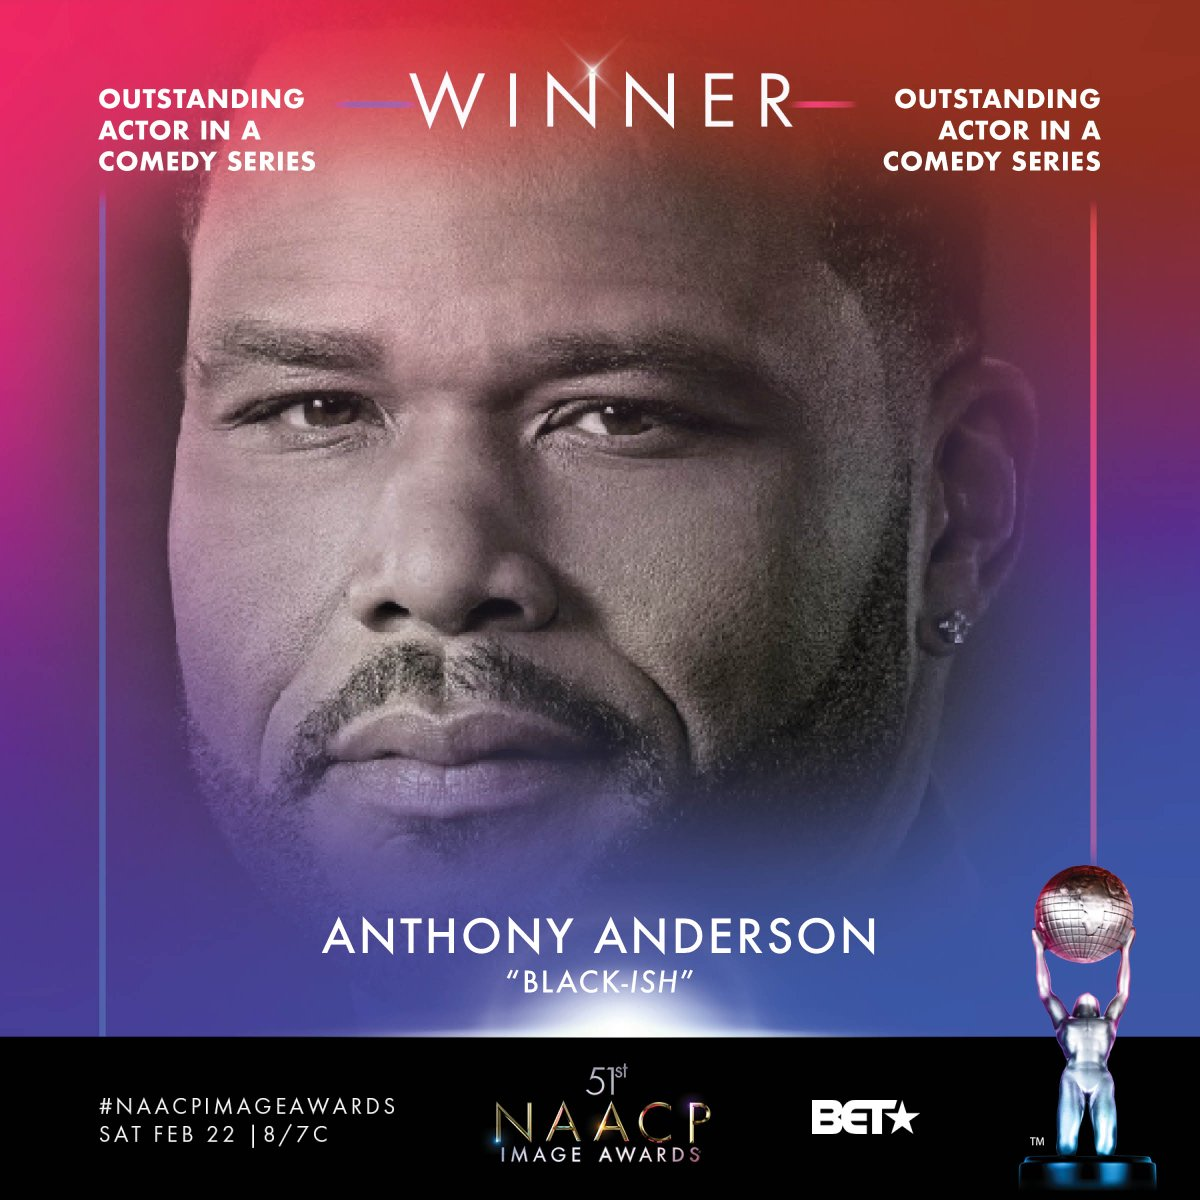 Congrats Outstanding Actor in a Comedy Series winner - @anthonyanderson  #NAACPImageAwards